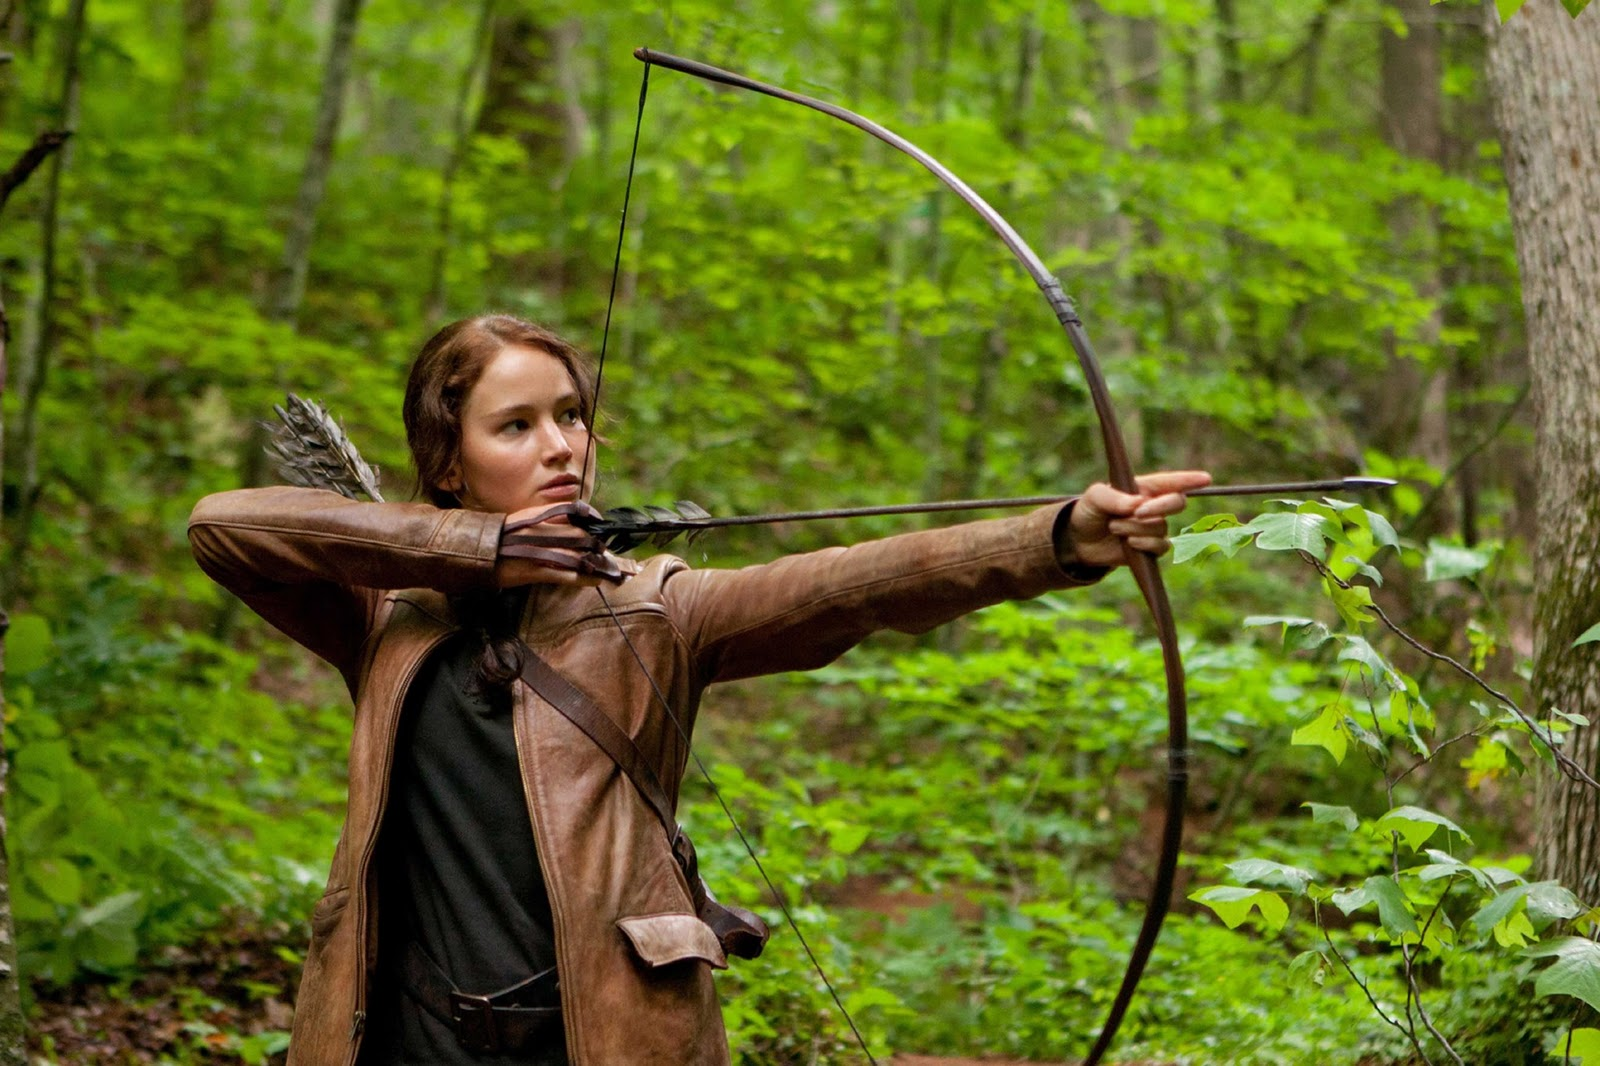 http://3.bp.blogspot.com/-7pA2spCURCU/T5DgEVo5waI/AAAAAAAAAV4/BfcxwtfSl88/s1600/katniss-district-12-shoot-arrow1.jpg